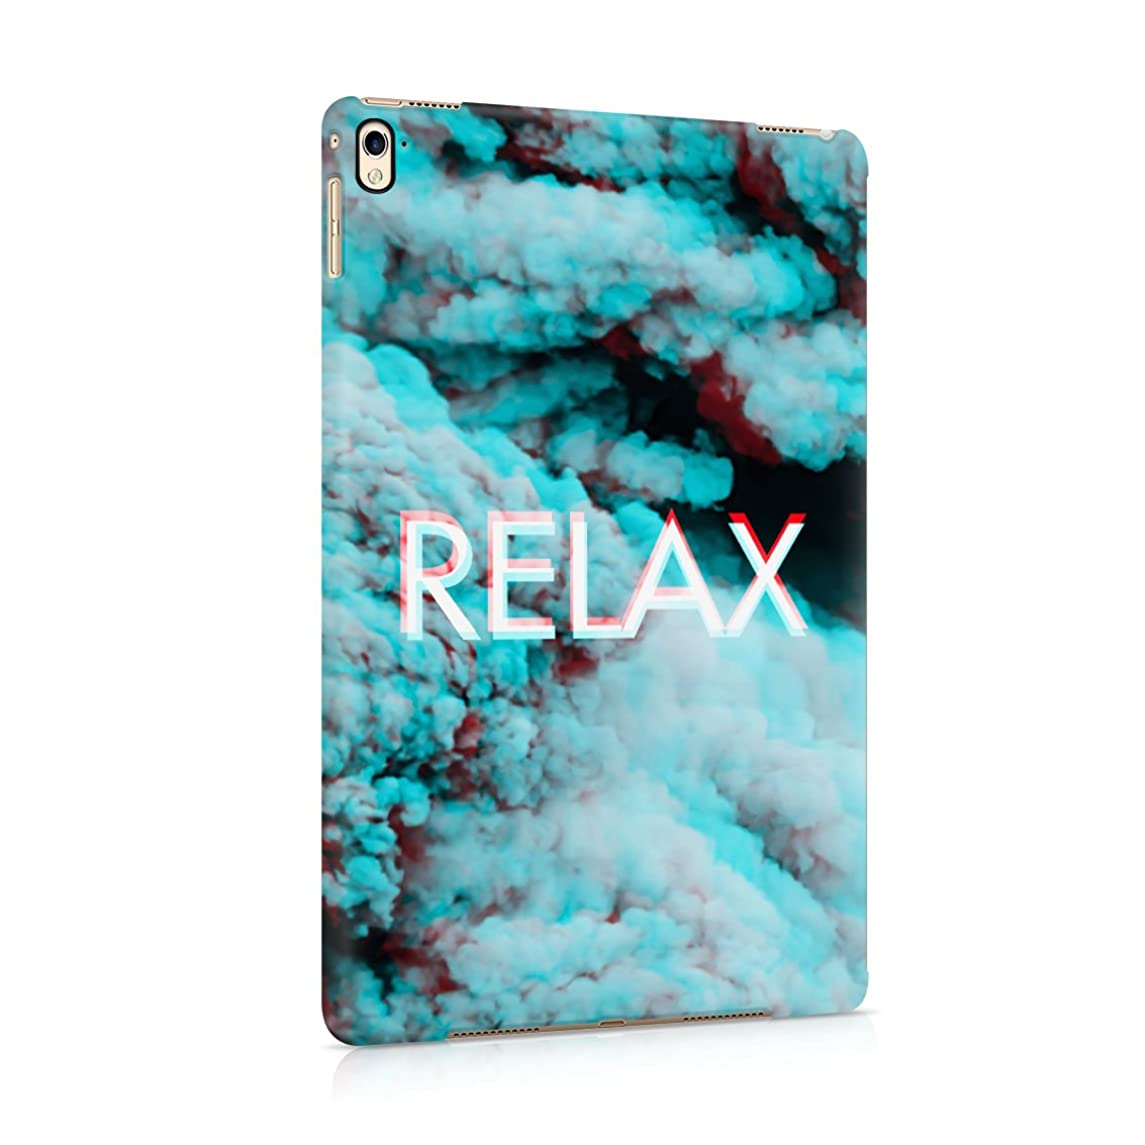 Trippy Blue Smoke Relax Plastic Tablet Snap On Back Cover Shell For iPad Pro 9.7